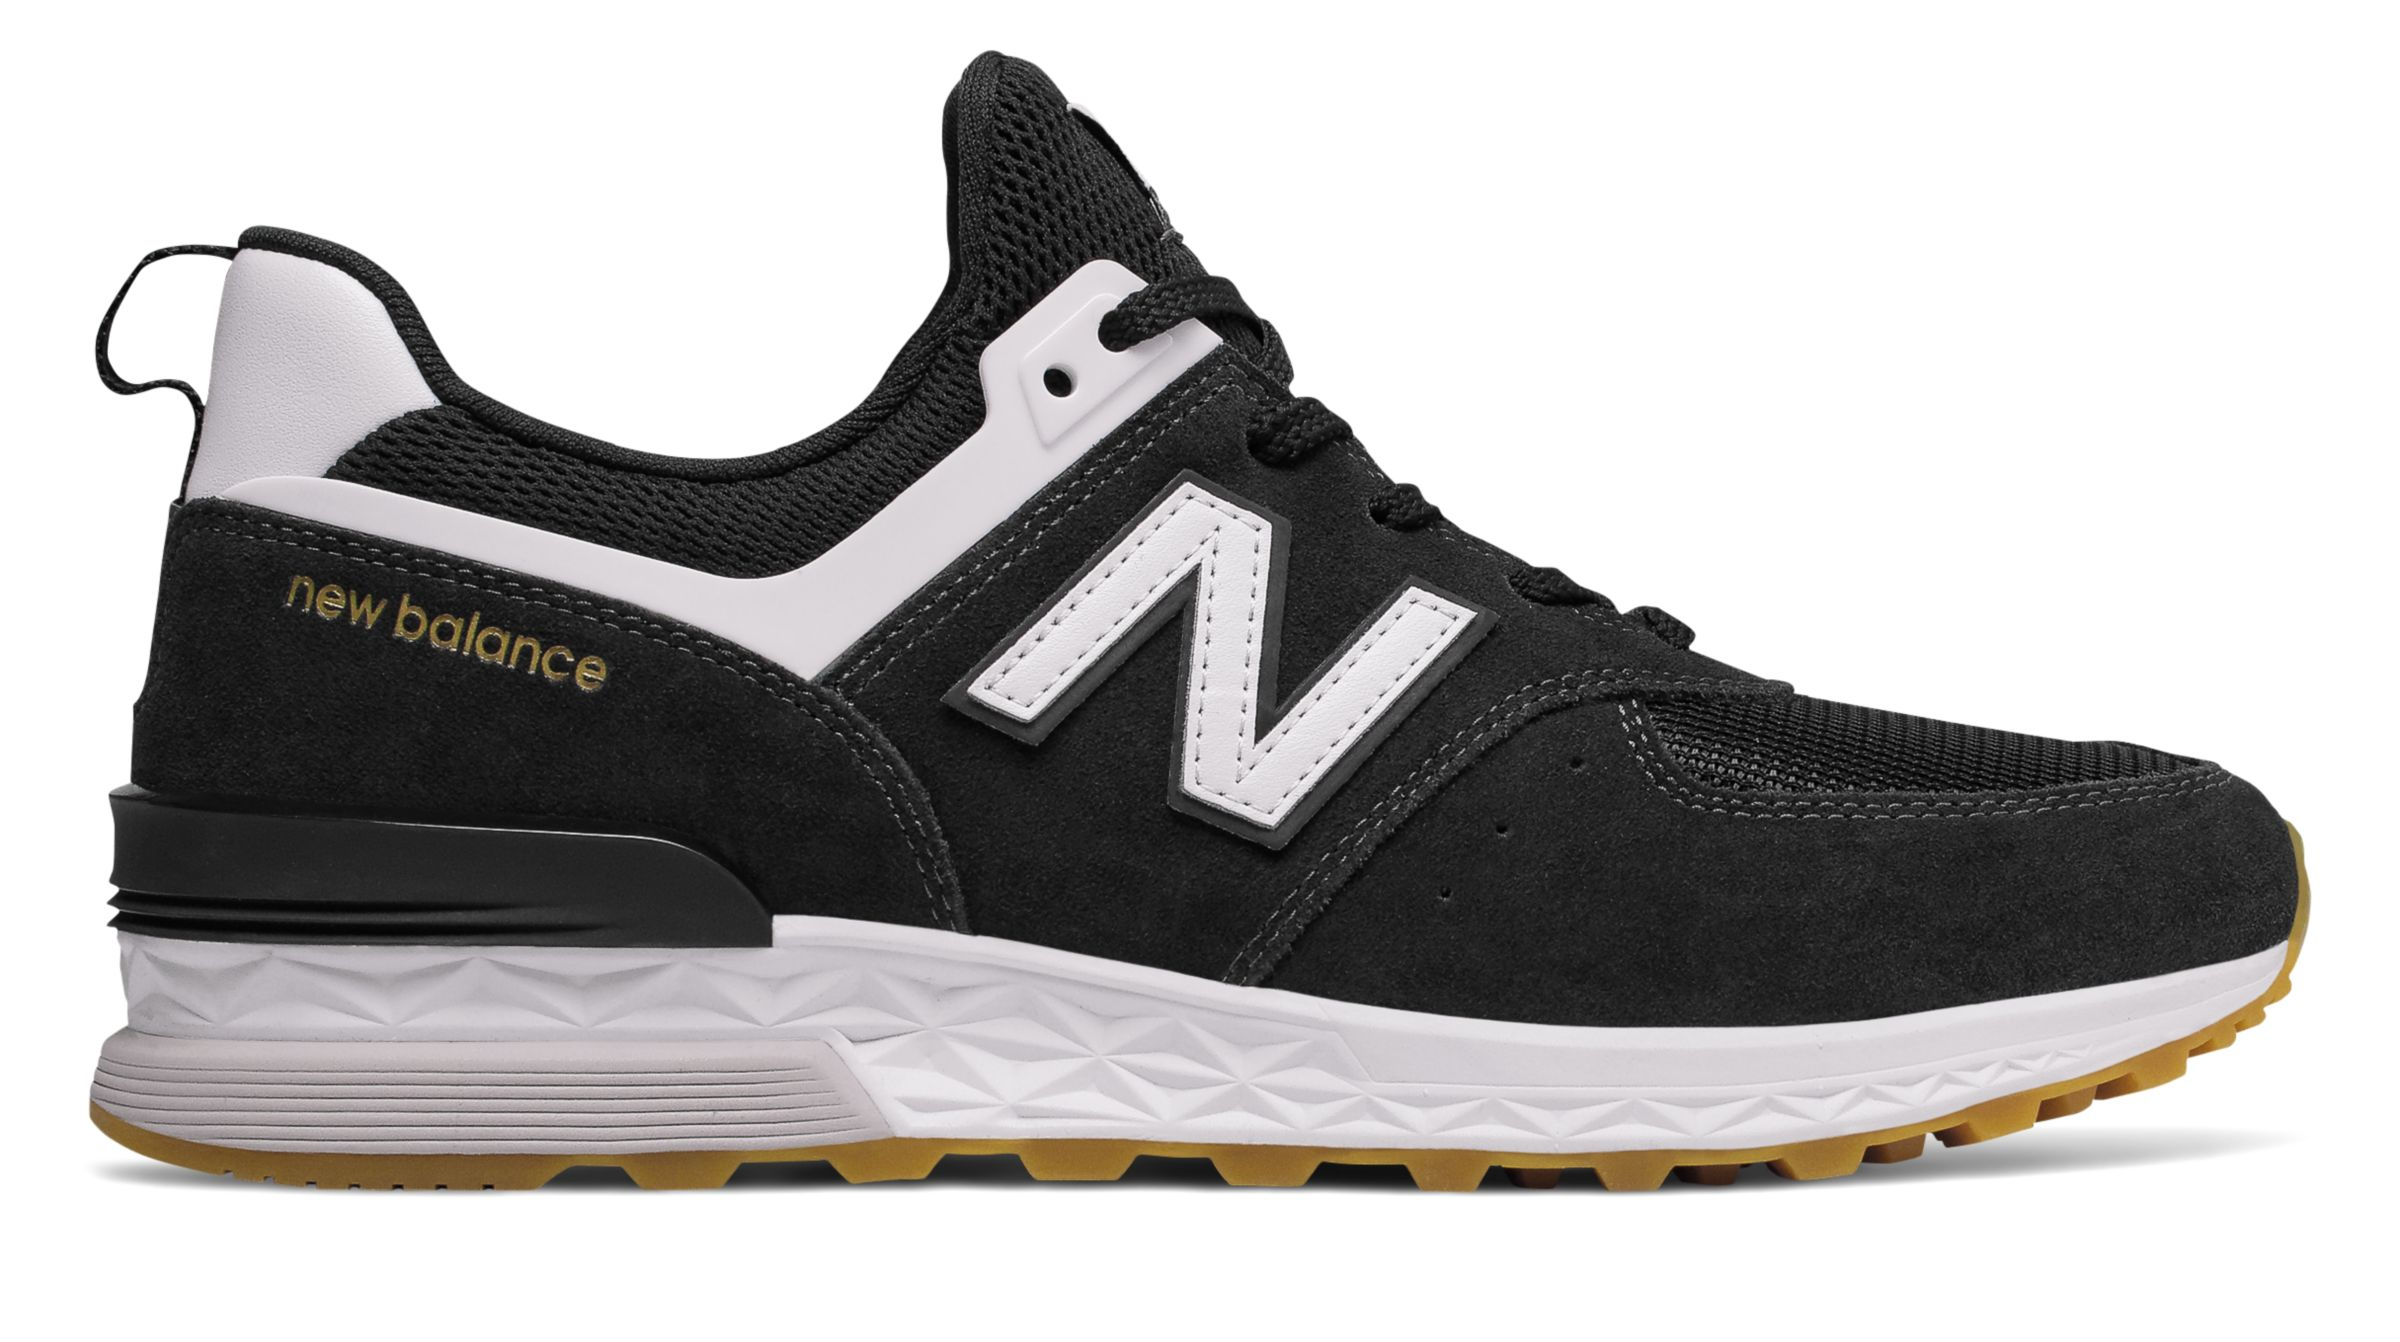 2a9ee660e6 New Balance Male Men's 574 Sport Mens Lifestyle Shoes Black With ...